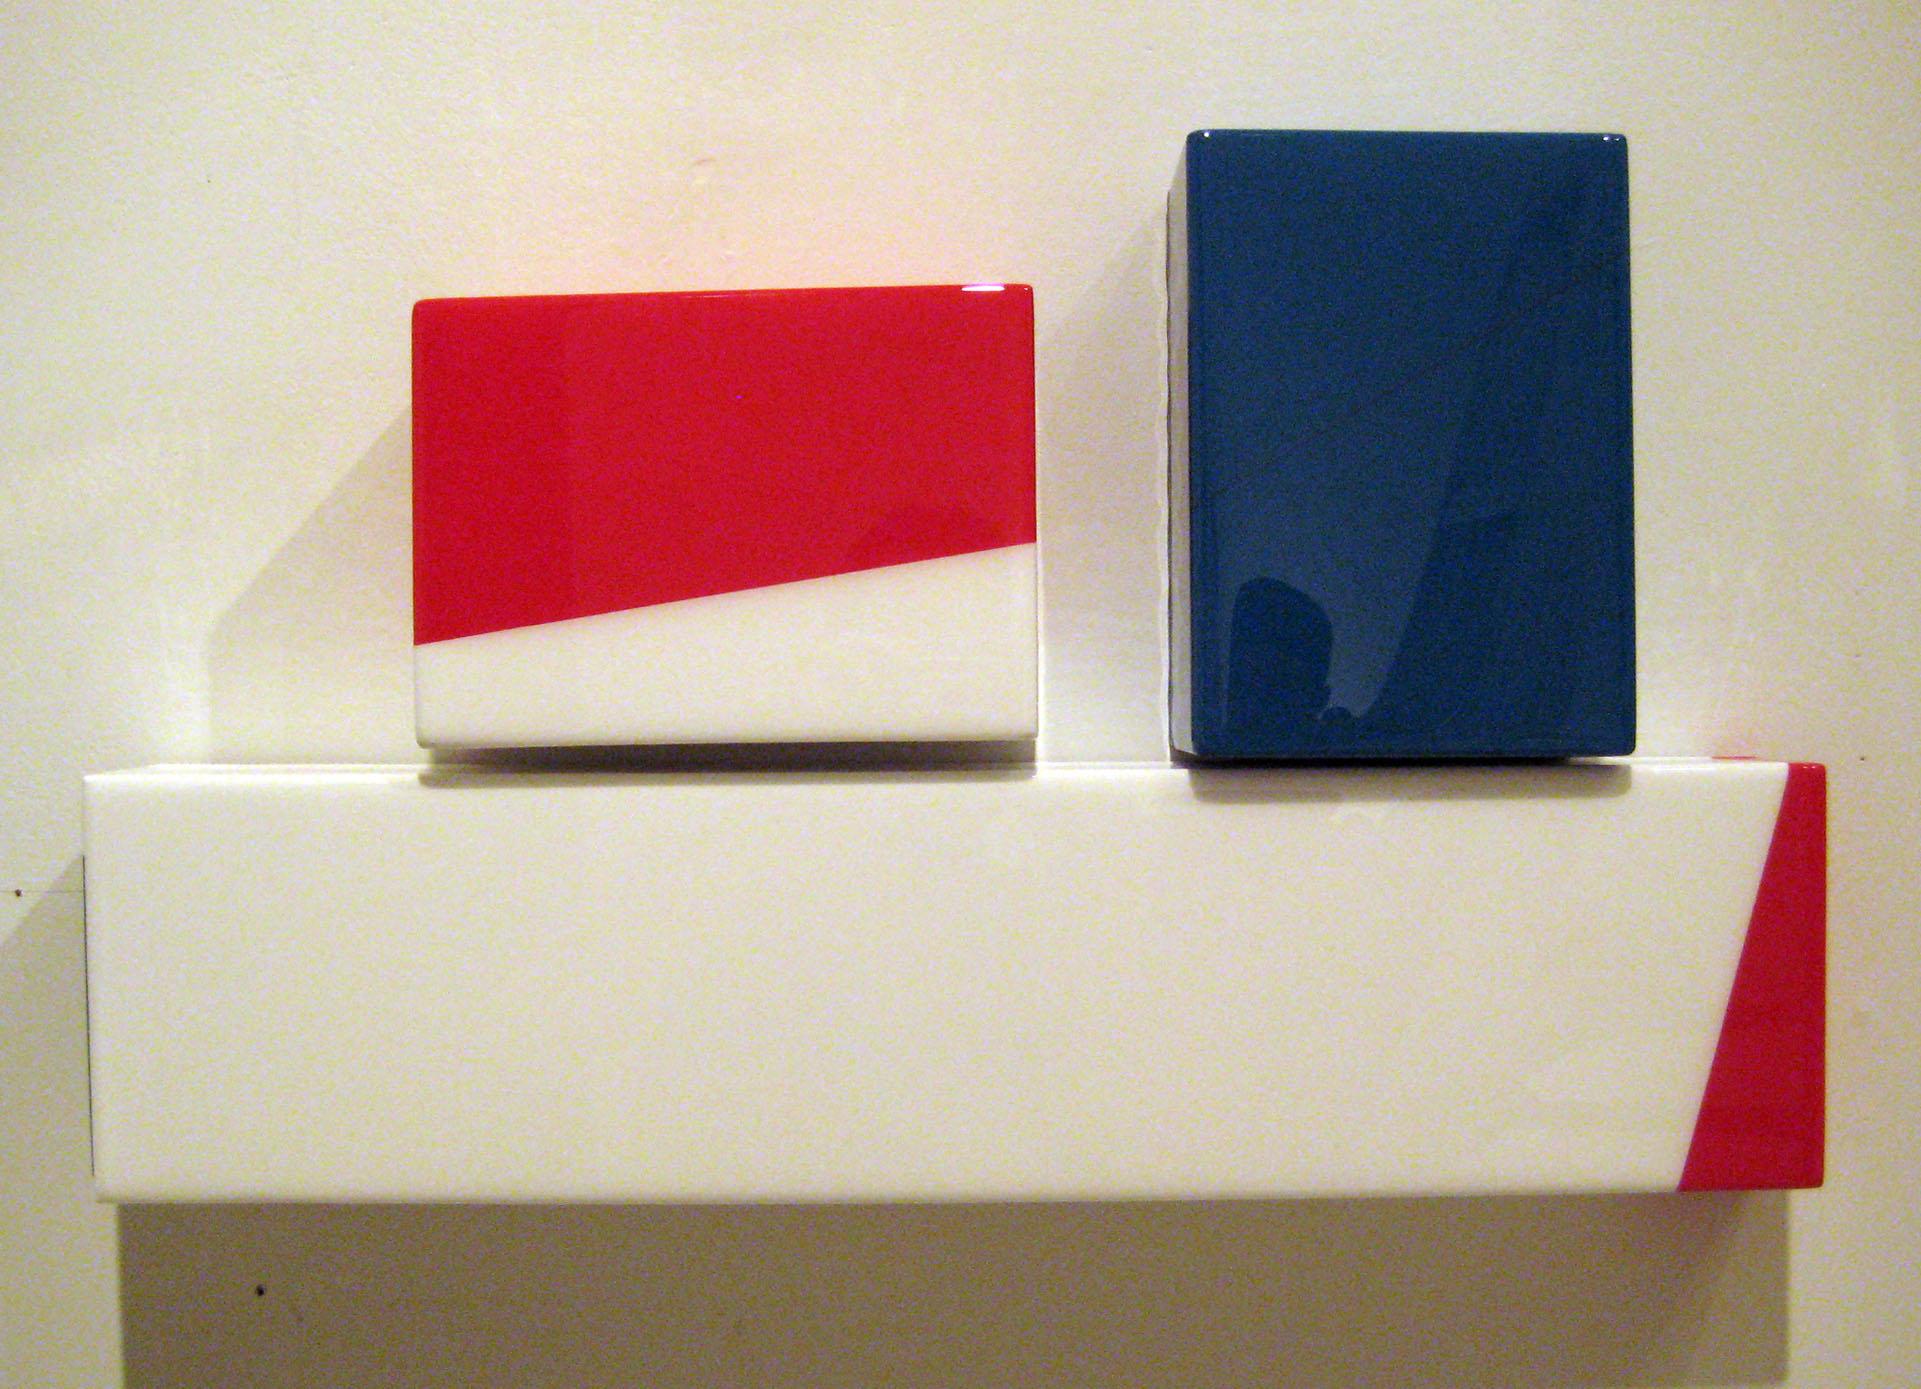 "Puzzle #2, In honour of France  –  Acrylic, MDF, UV resin 12"" x 24"" x 3"" / 30 x 61 x 8 cm"